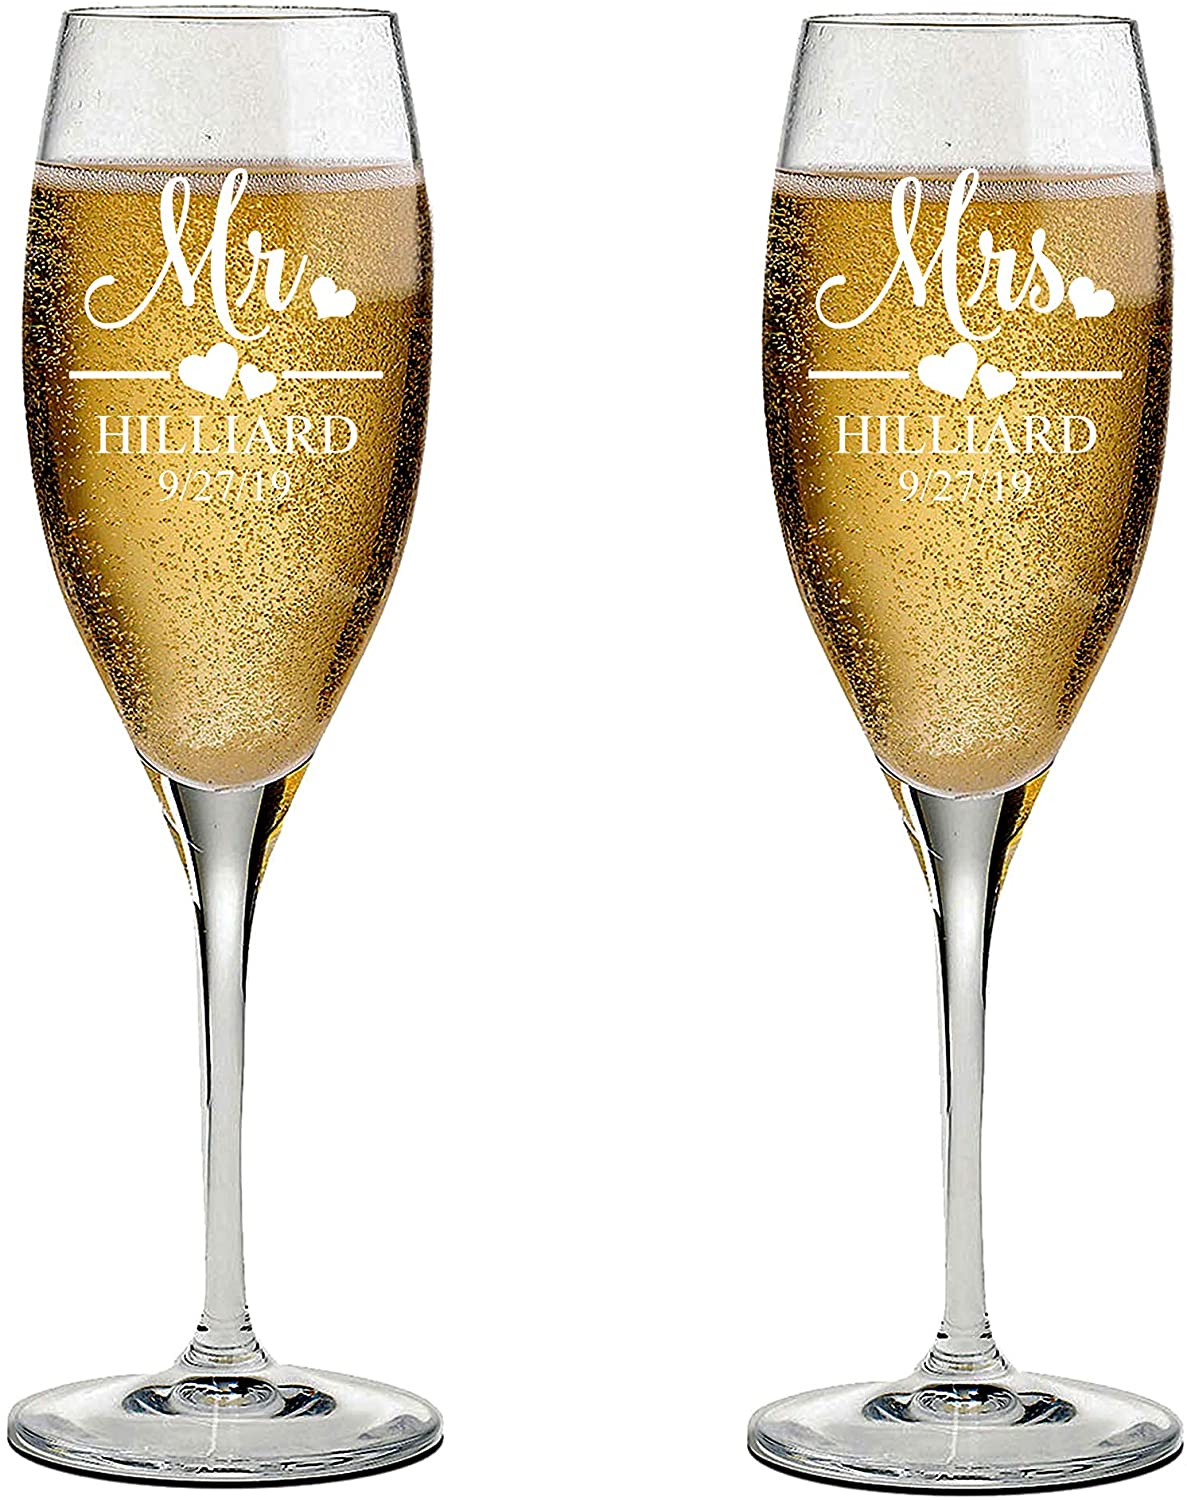 Mr and Mrs Wedding Toasting Champagne Flutes, Set of 2, Laser engraved Tosting Flutes Engraved Personalized Glasses for Bride and Groom